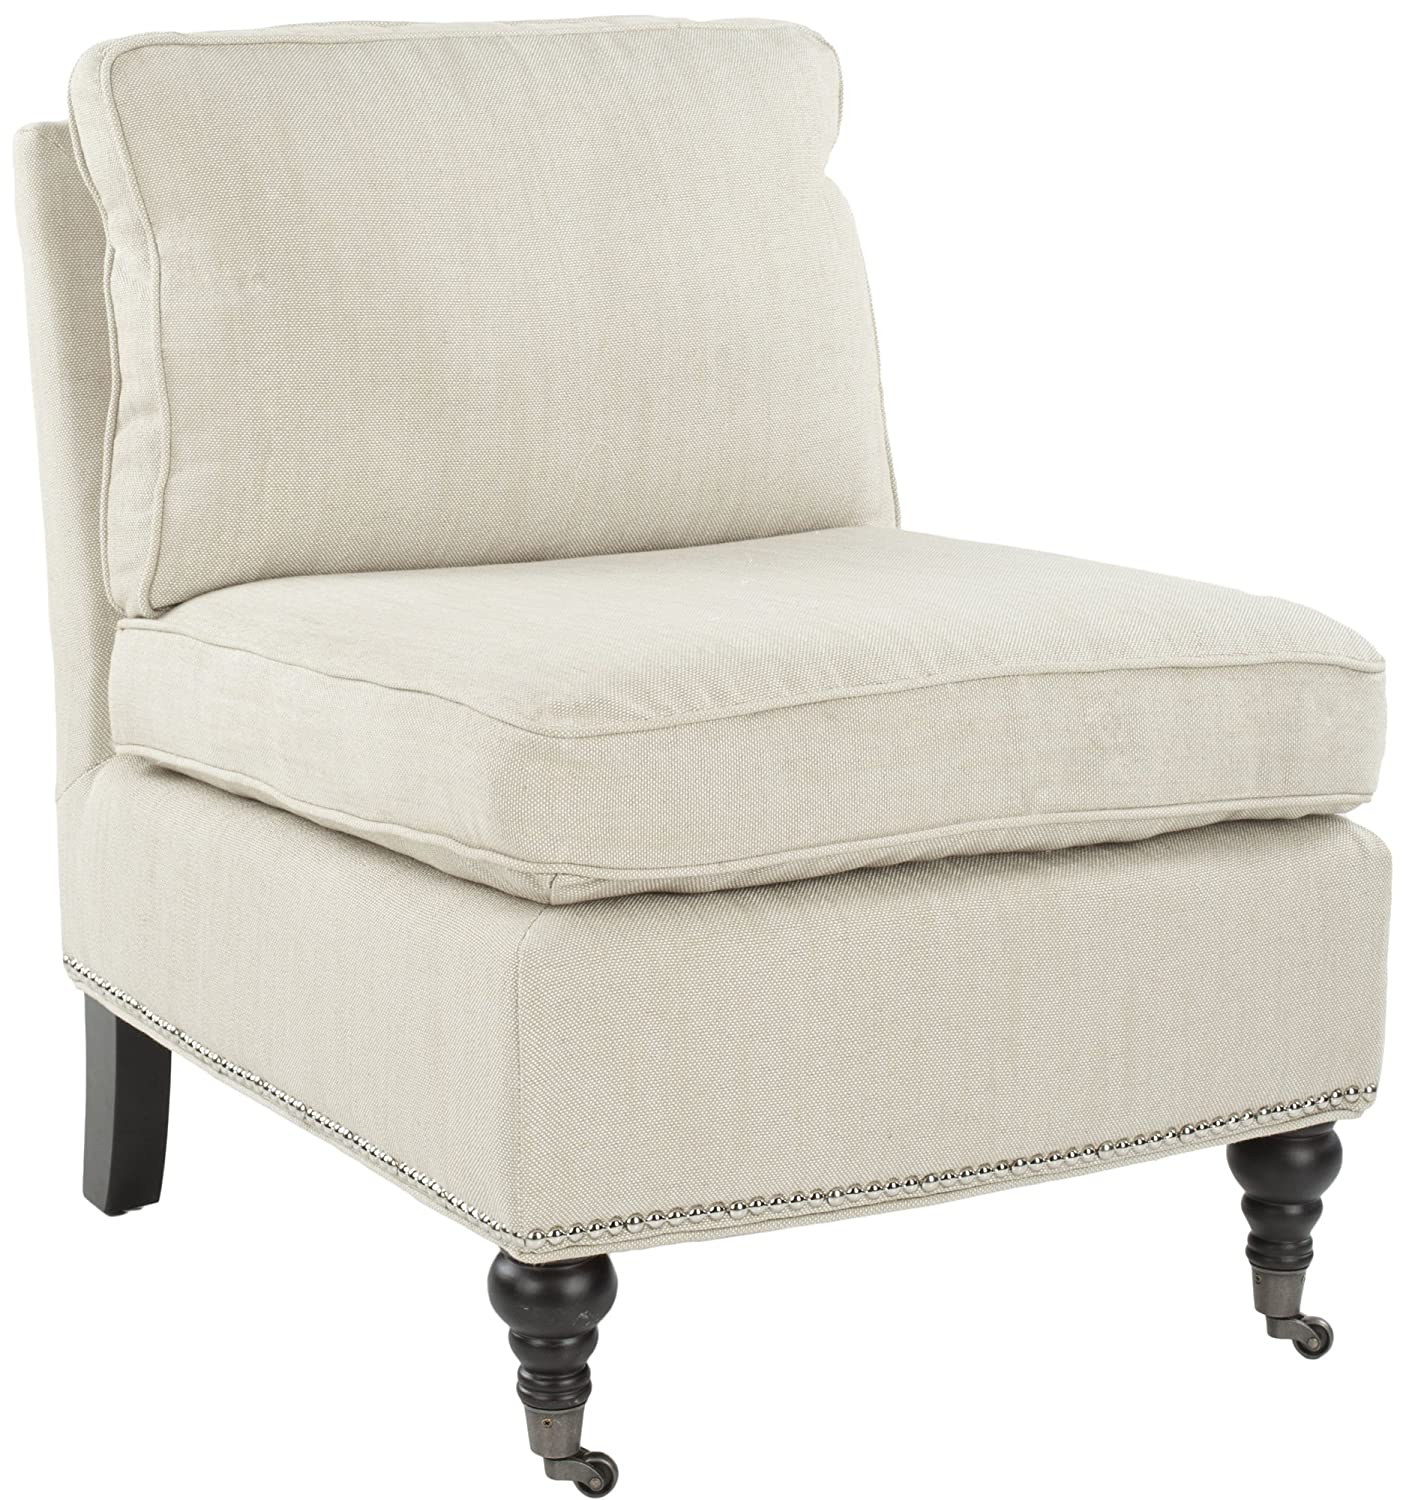 Amazon.com: Safavieh Mercer Collection Randy Slipper Chair, Off White:  Kitchen U0026 Dining